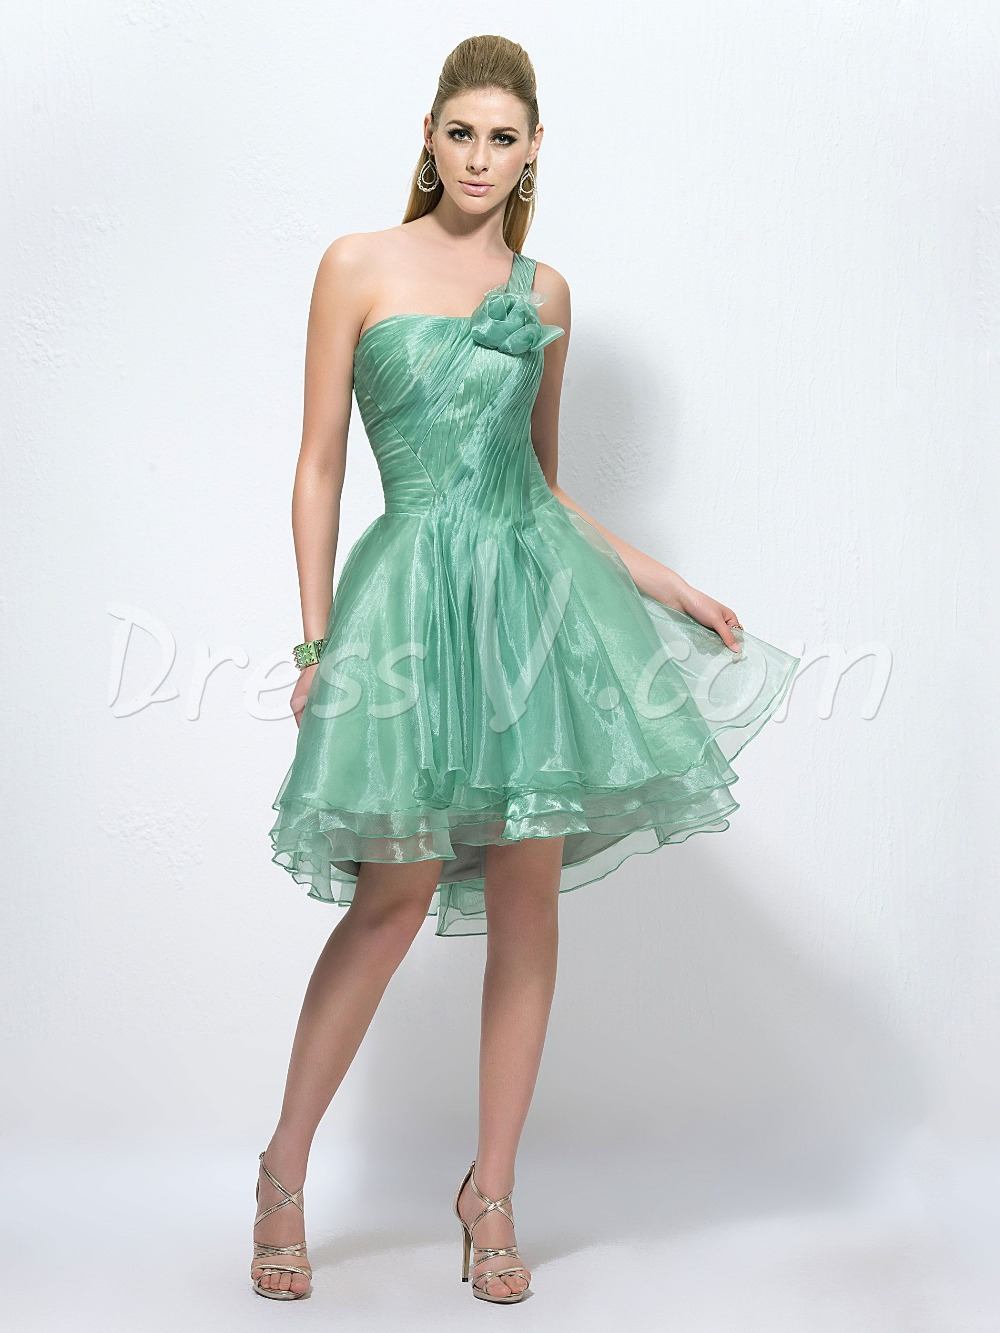 Homecoming Dresses Short In Front Long In Back - Homecoming Prom Dresses